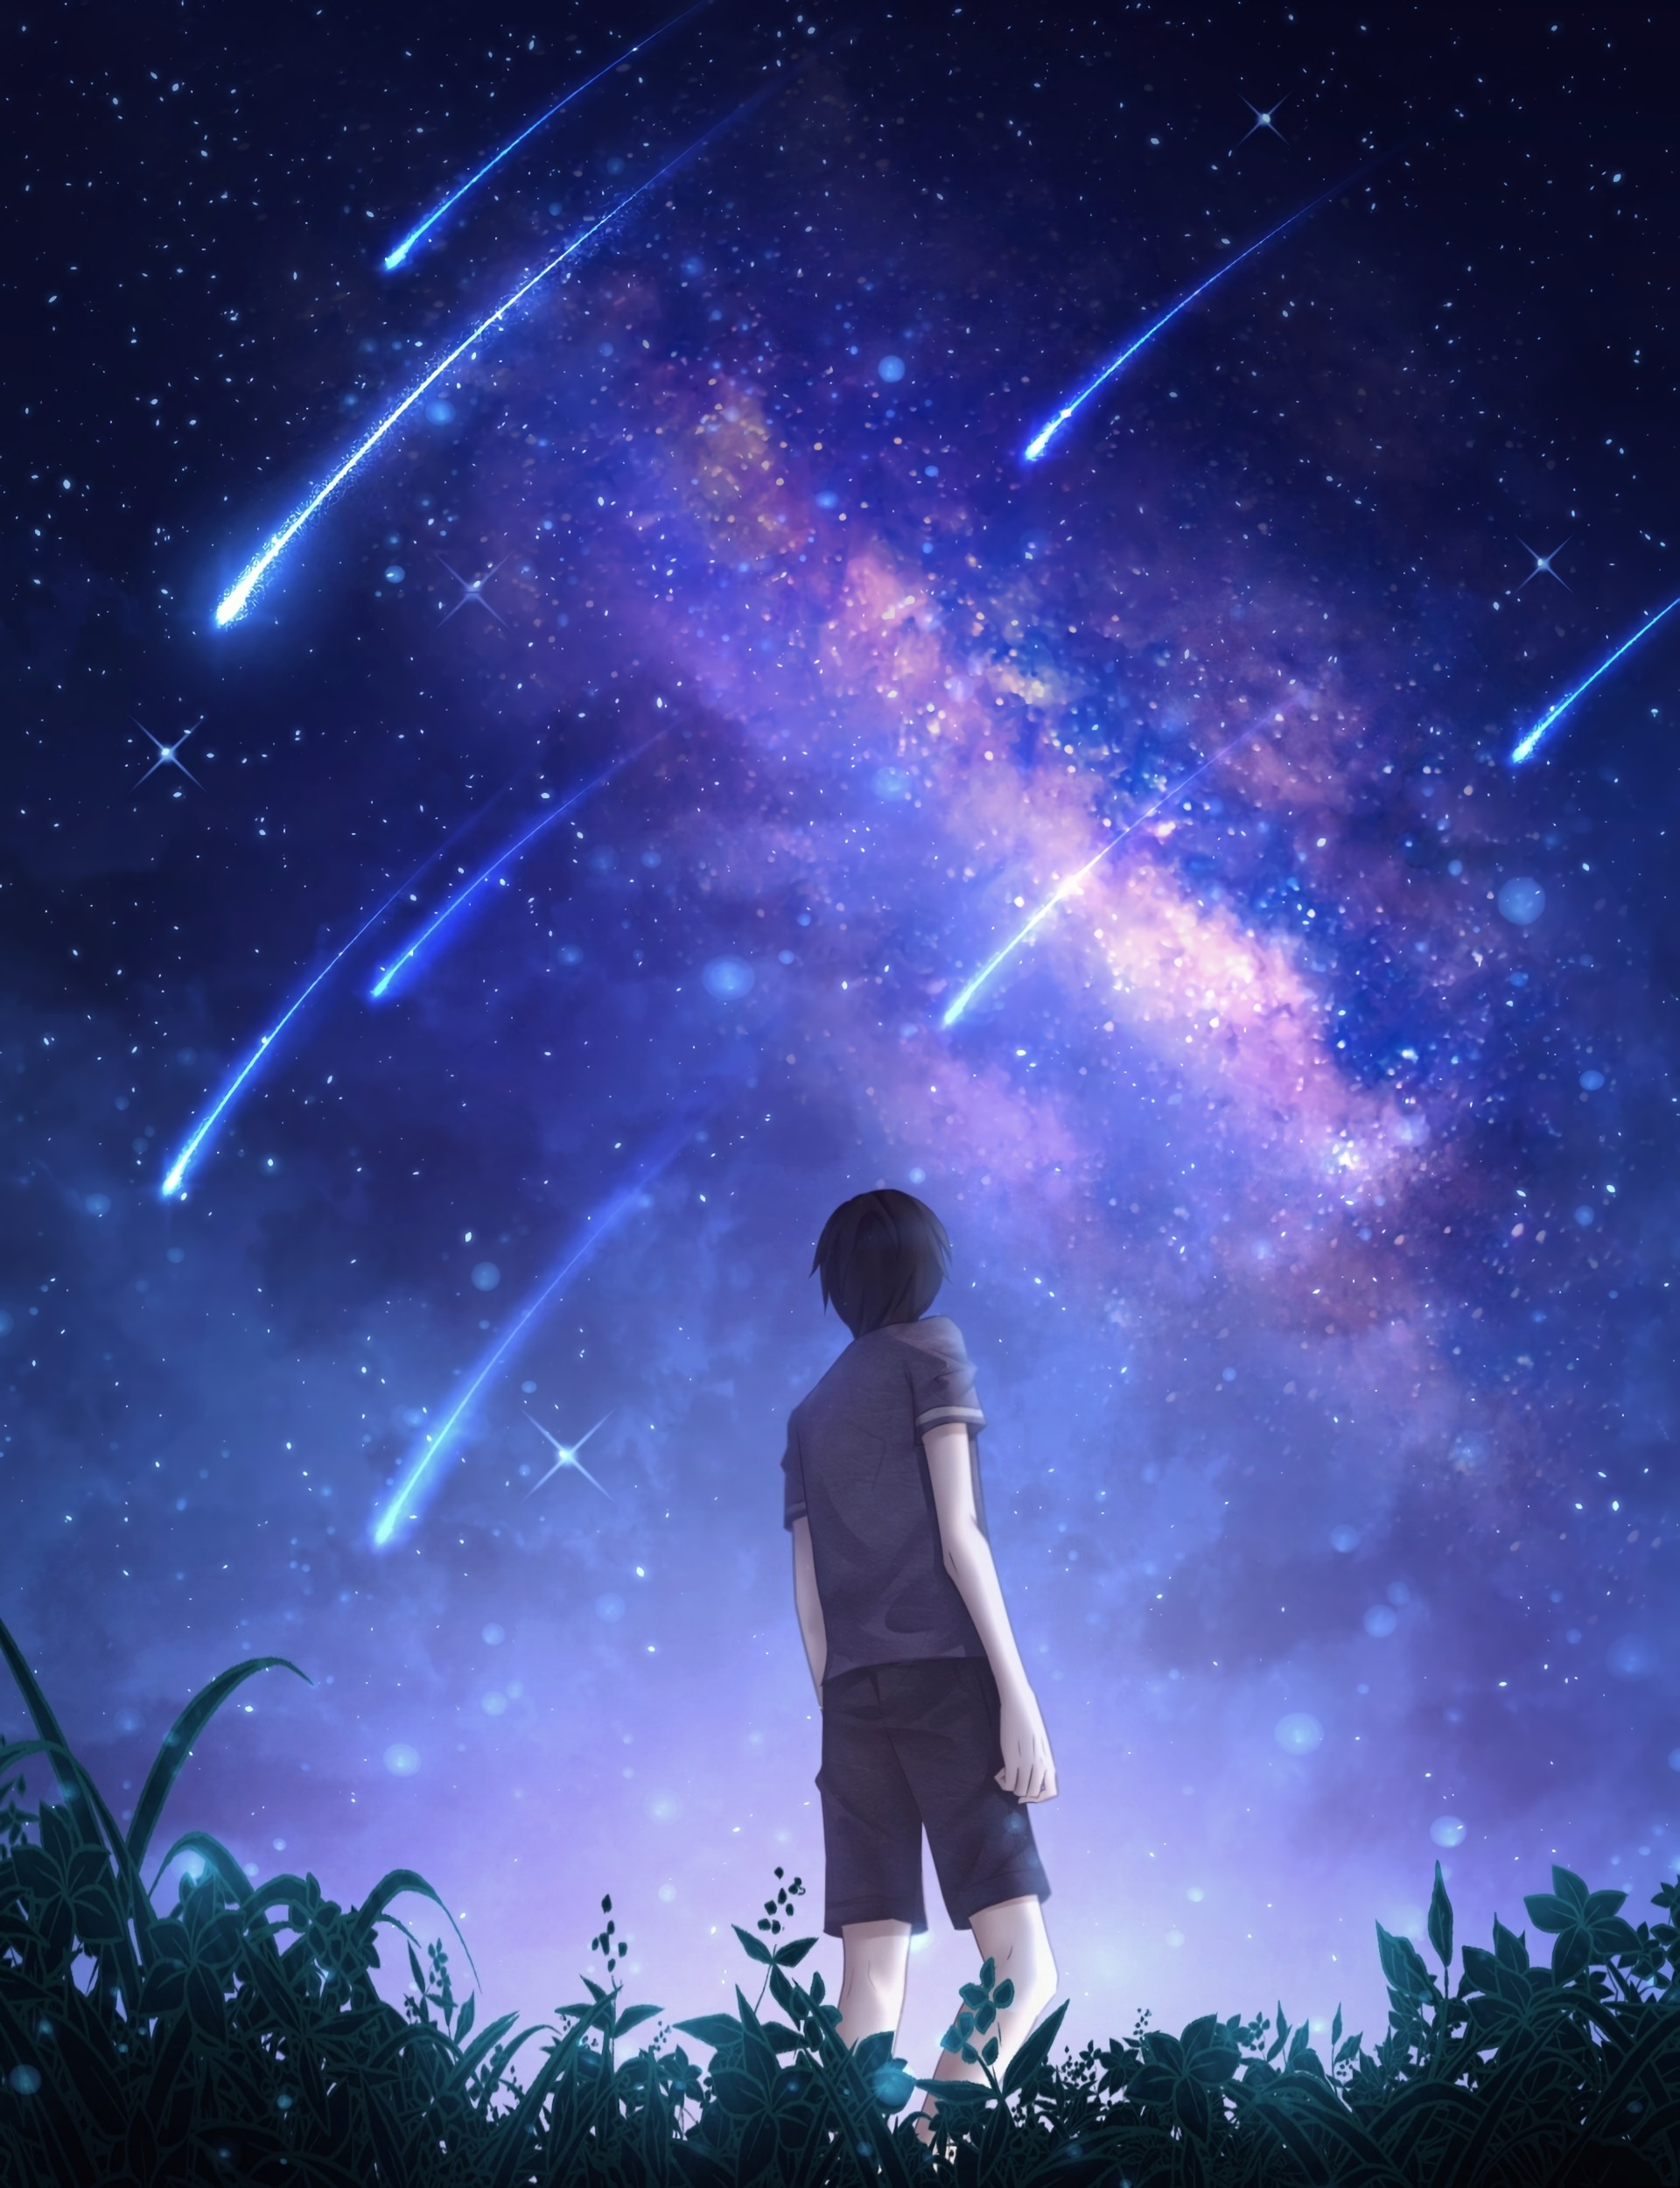 138327 download wallpaper Silhouette, Starry Sky, Meteora, Meteors, Starfall, Night, Art screensavers and pictures for free